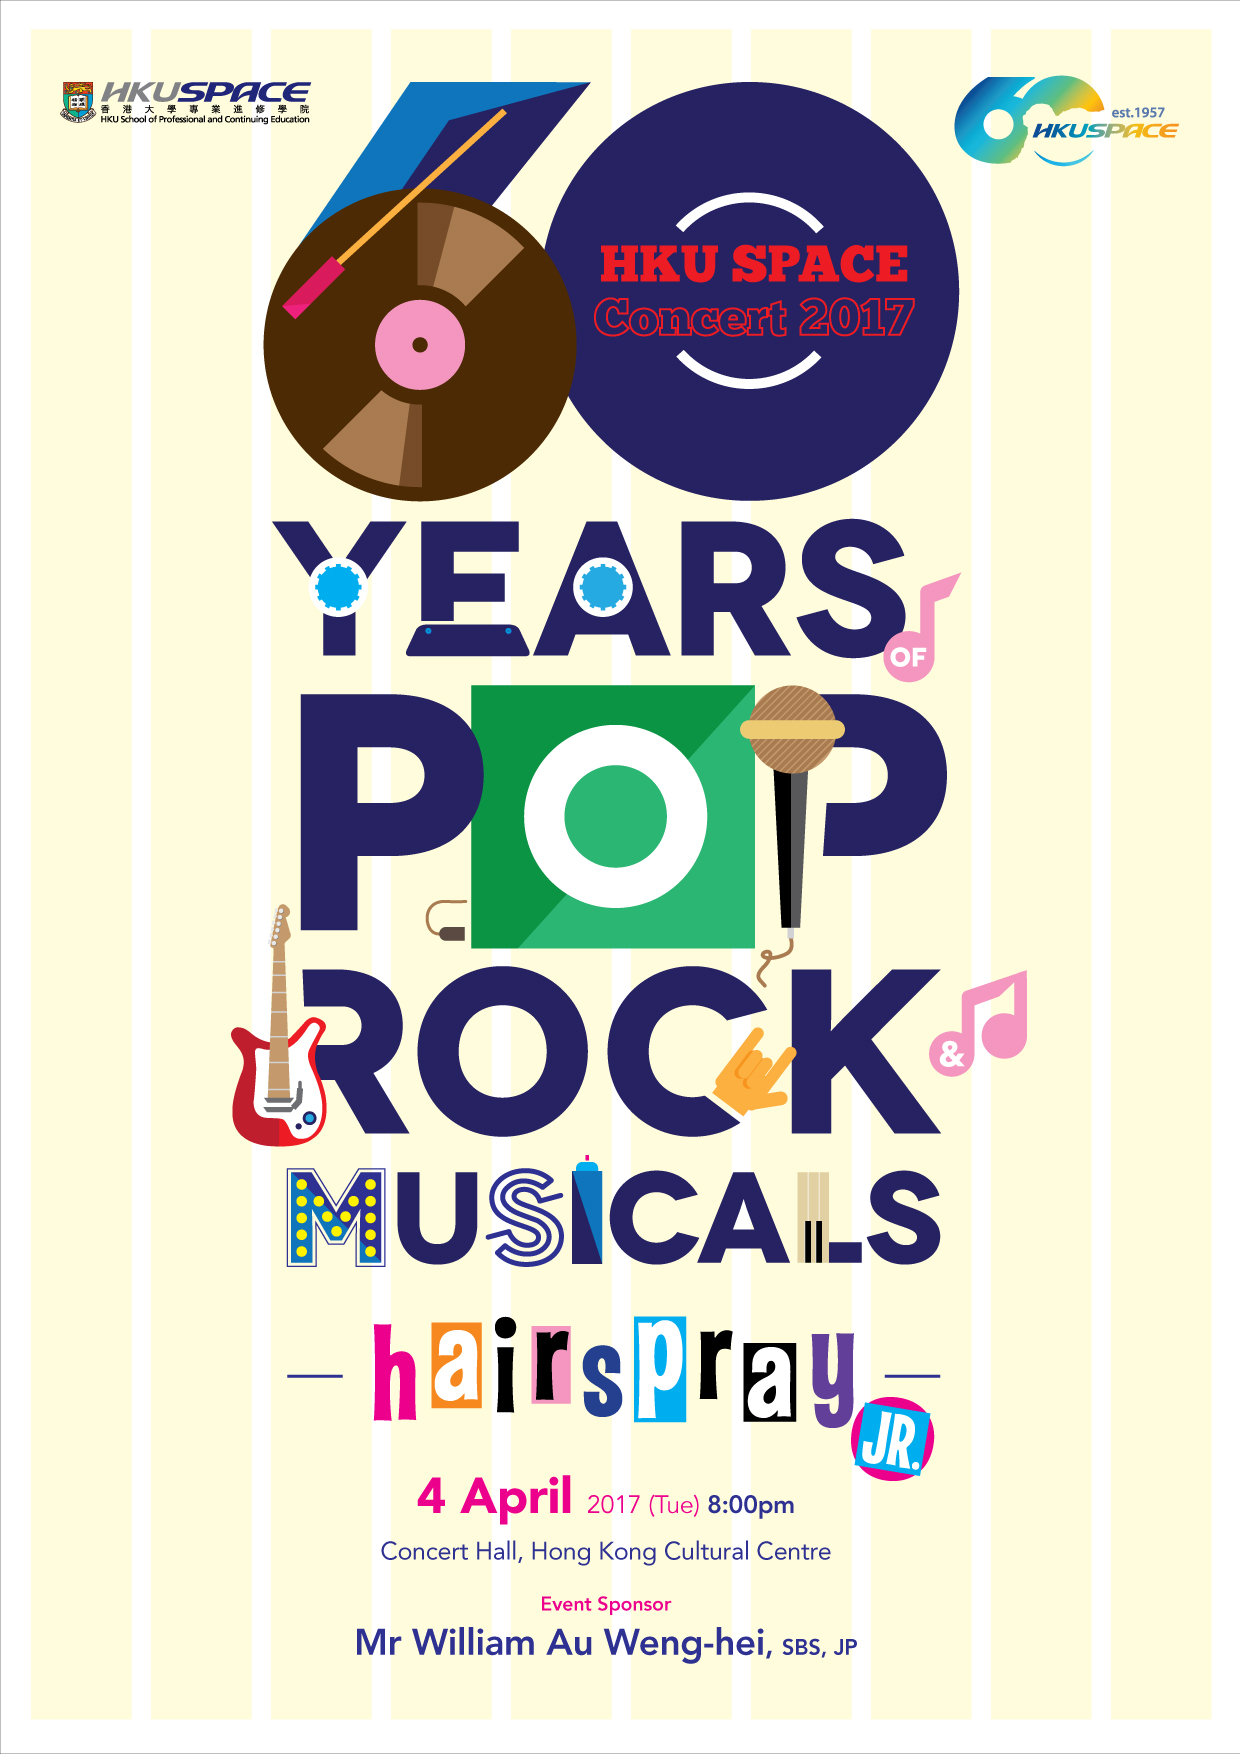 Annual School Concert: 60 Years of Pop, Rock & Musicals